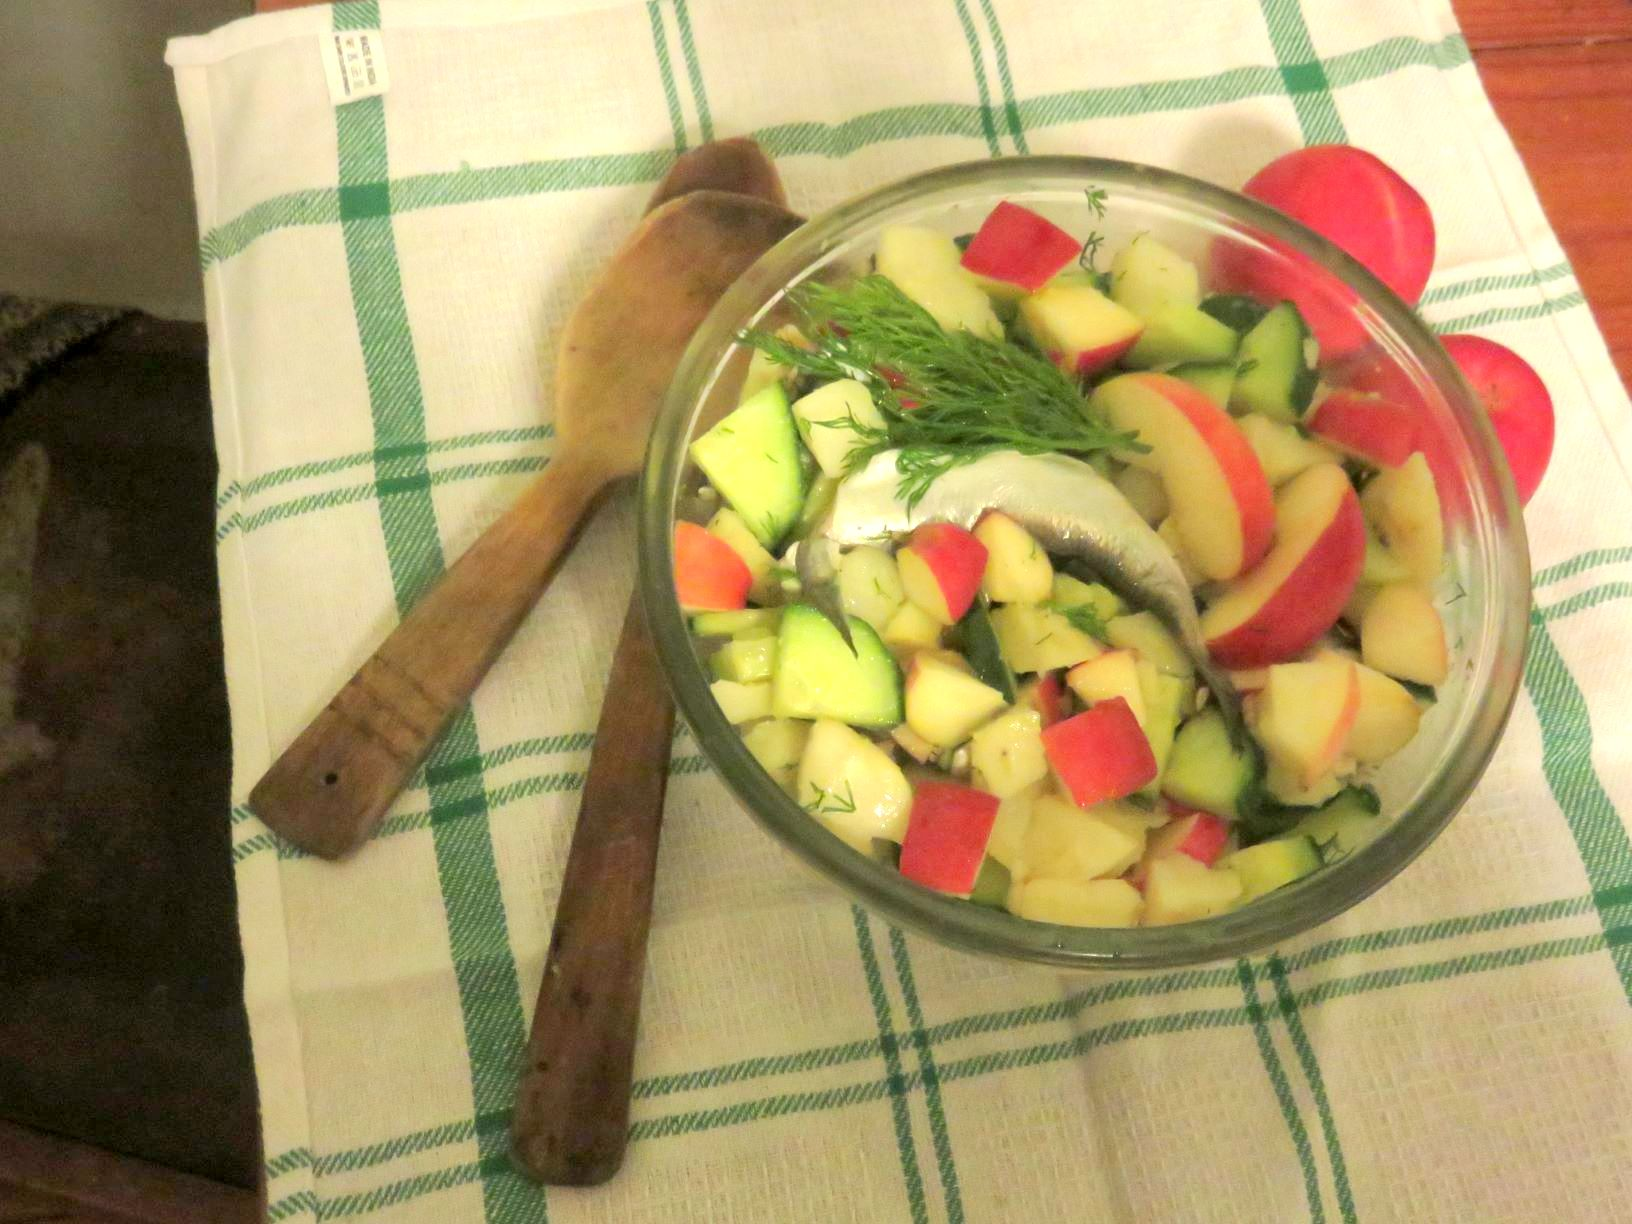 Seaman's Salad served in a glass bowl